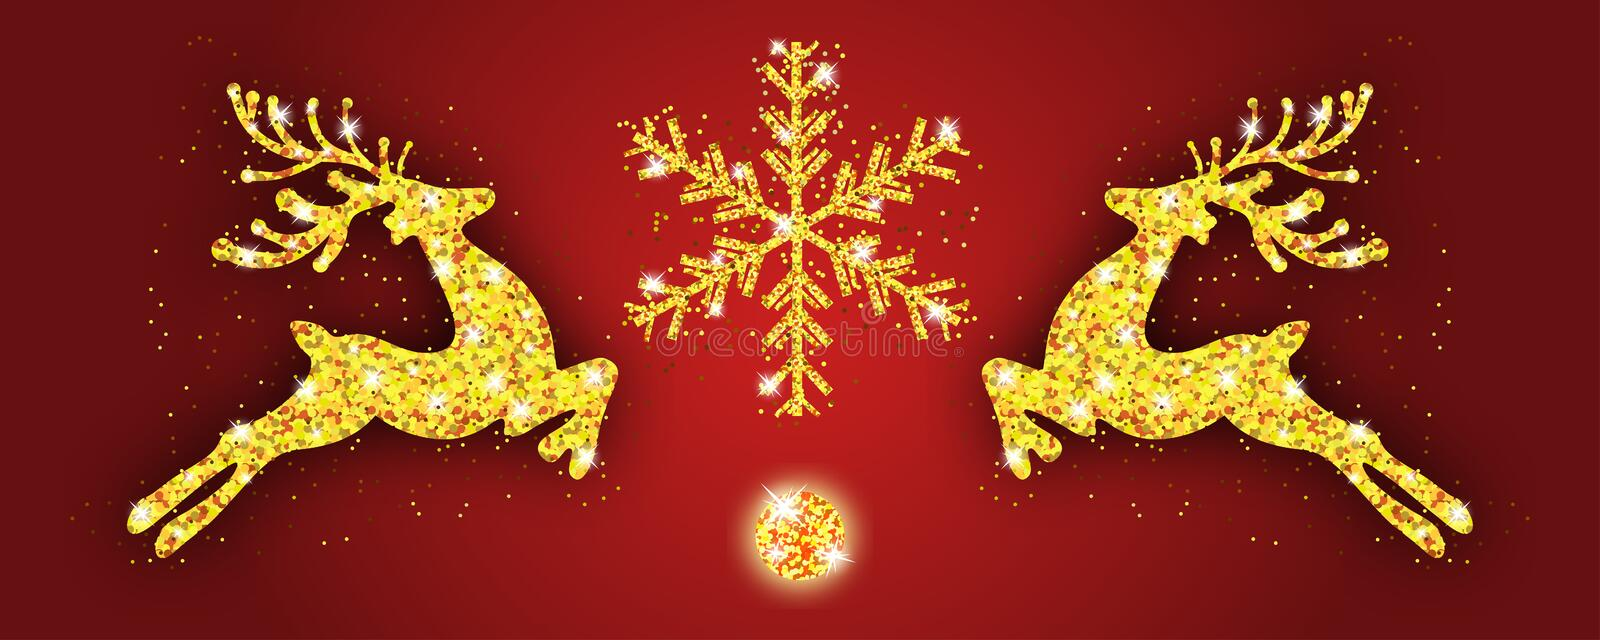 Christmas pattern gold deer and snowflake. Xmas decoration with reindeer. Happy New Year red background. Template for greeting. Card, banner or poster. Vector royalty free illustration